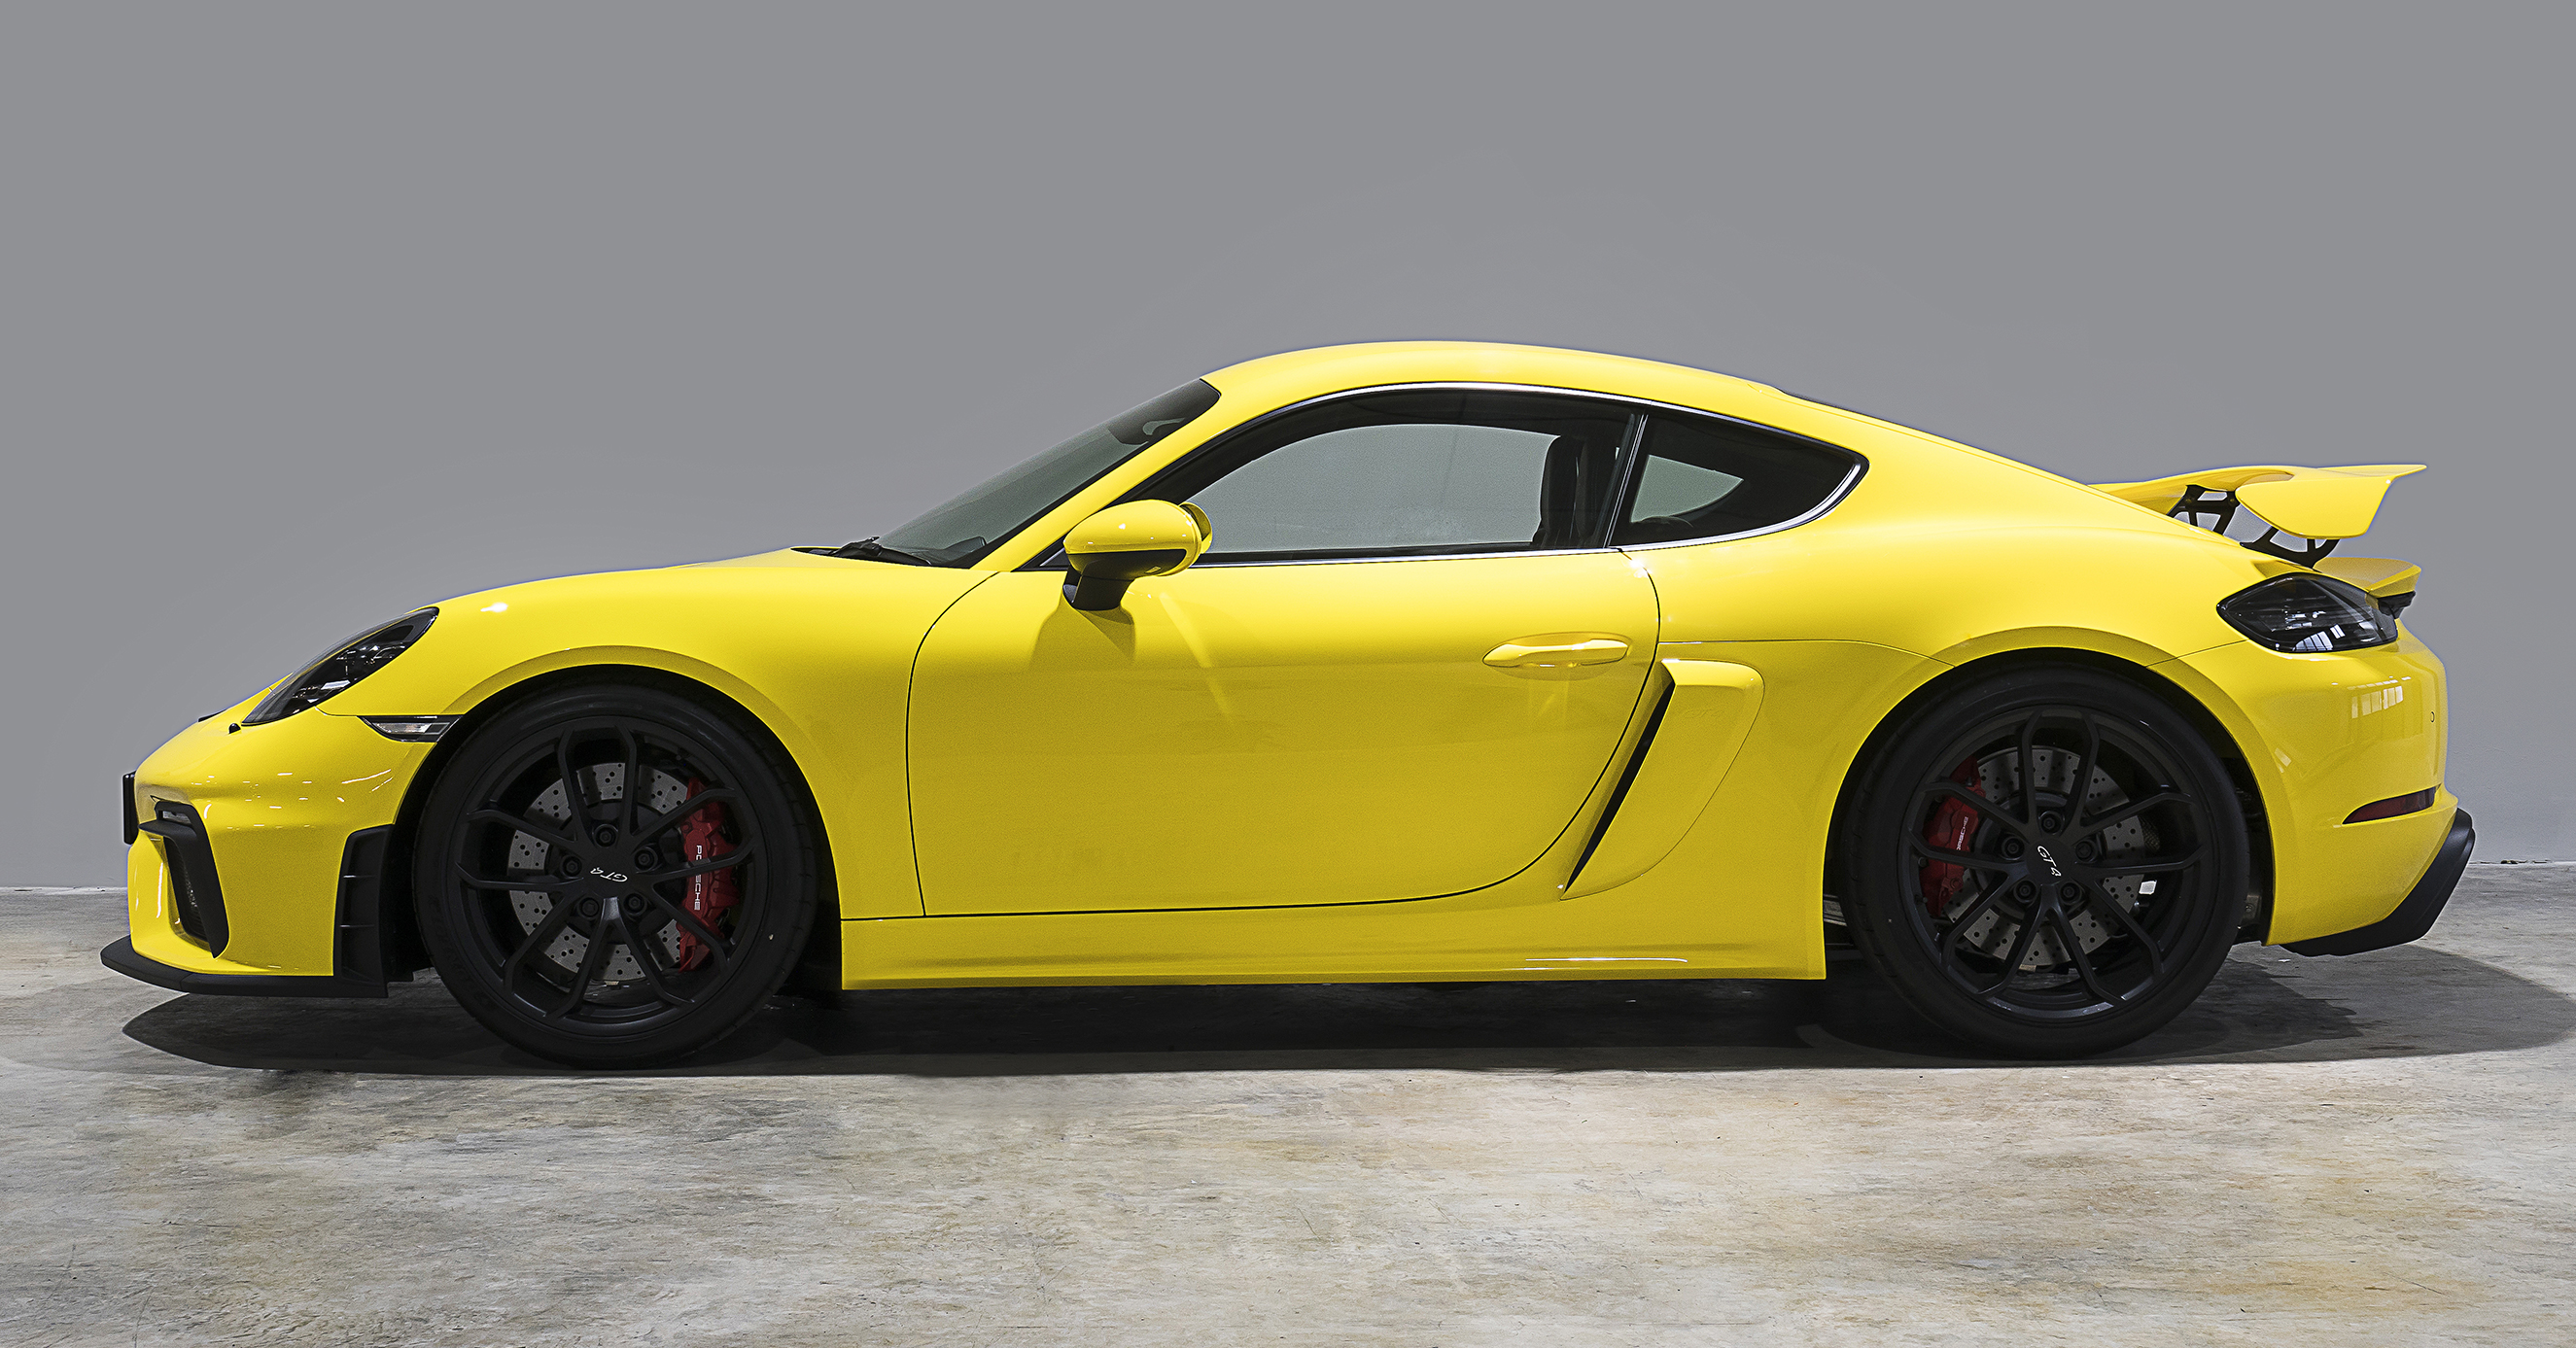 The New Porsche 718 Cayman is the perfect sports car for those who like to push the limits. For those who would rather ask 'why not?' than 'why?'. For those who take fun seriously and who would rather sit in a sports seat than a leather armchair.